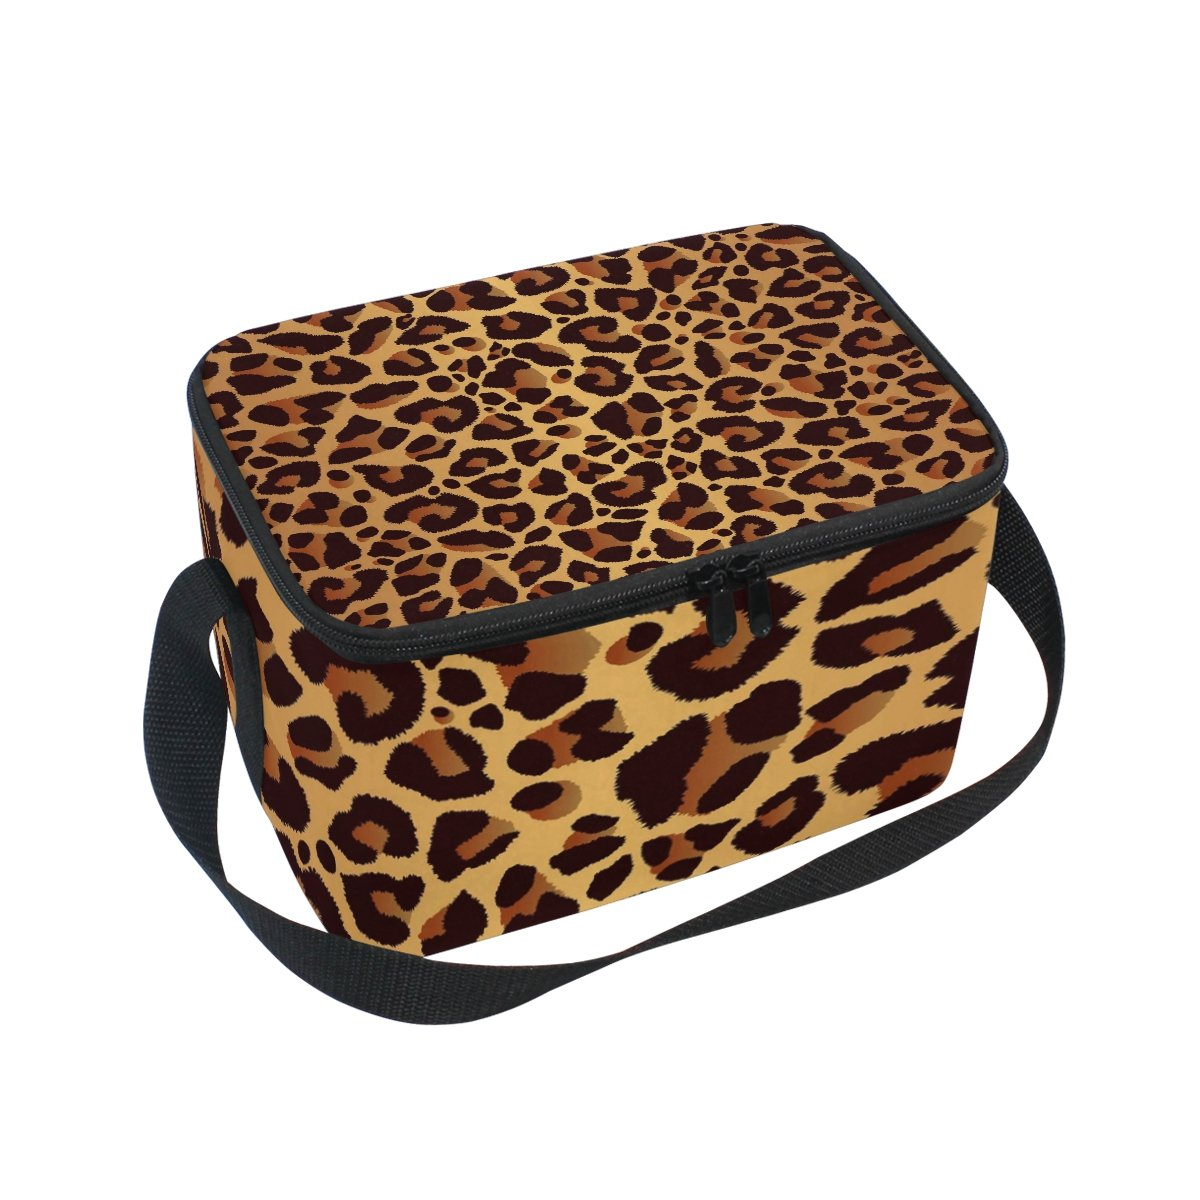 Use4 Leopard Print Bright Animal Skin Insulated Lunch Bag Tote Bag Cooler Lunchbox for Picnic School Women Men Kids